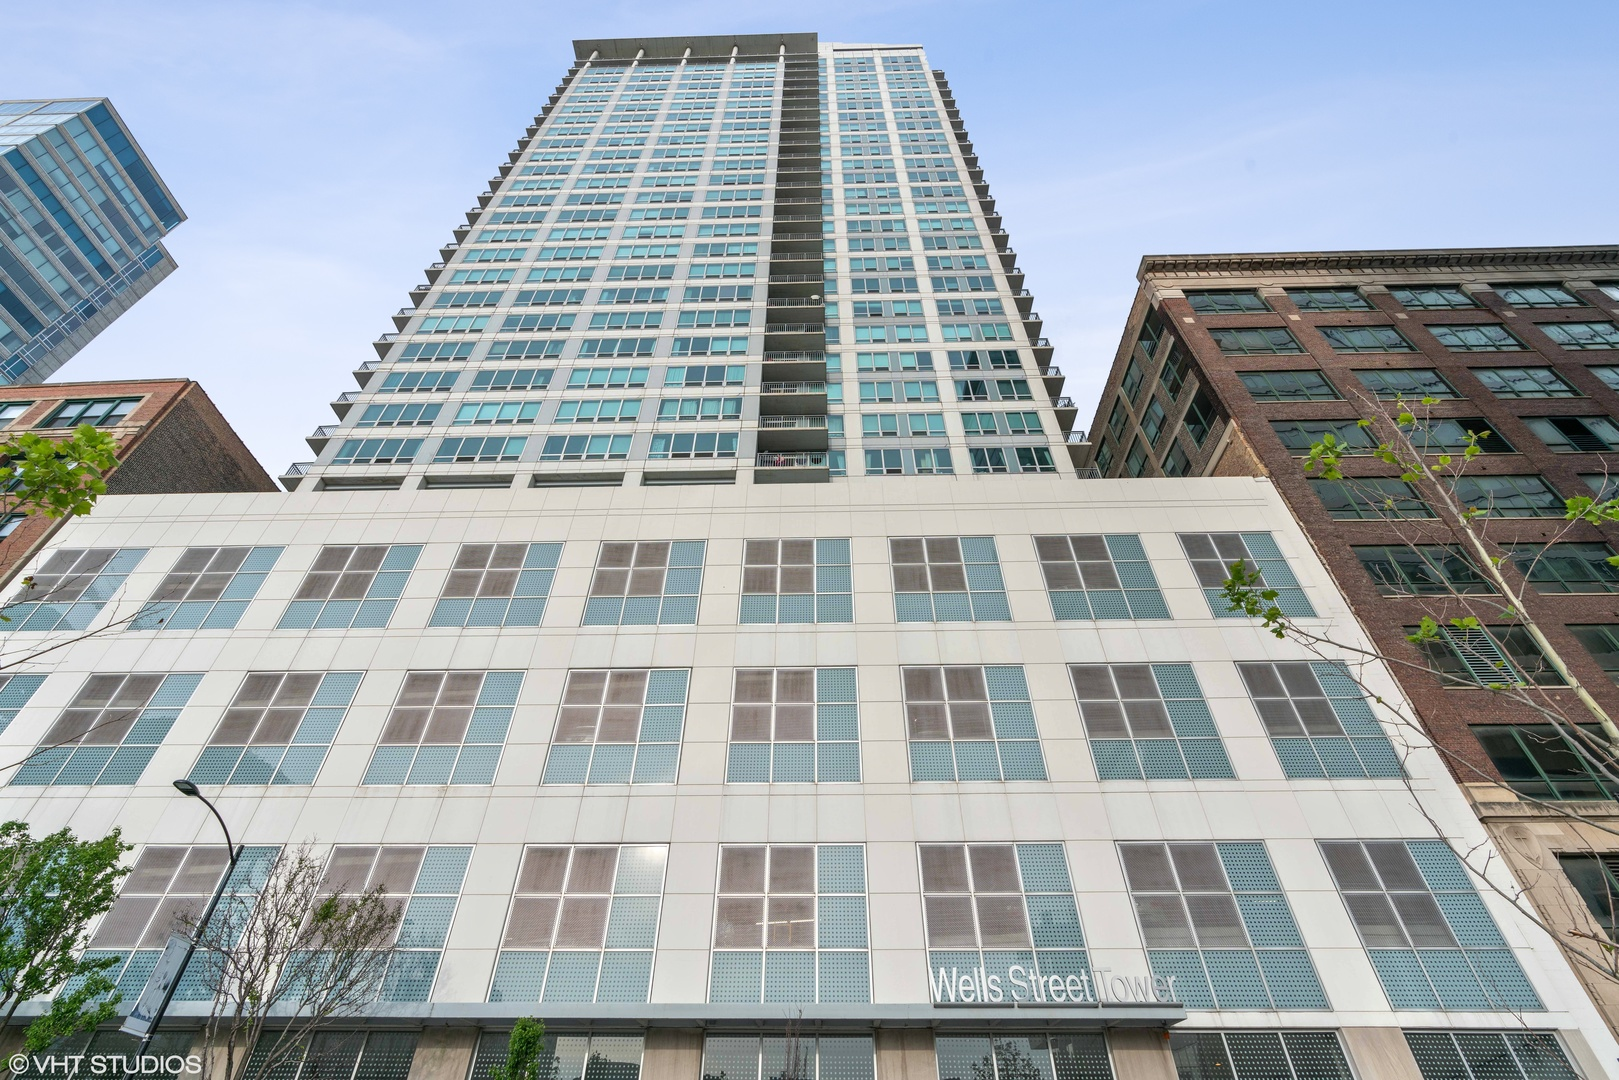 701 South Wells Street 2804, CHICAGO, Illinois